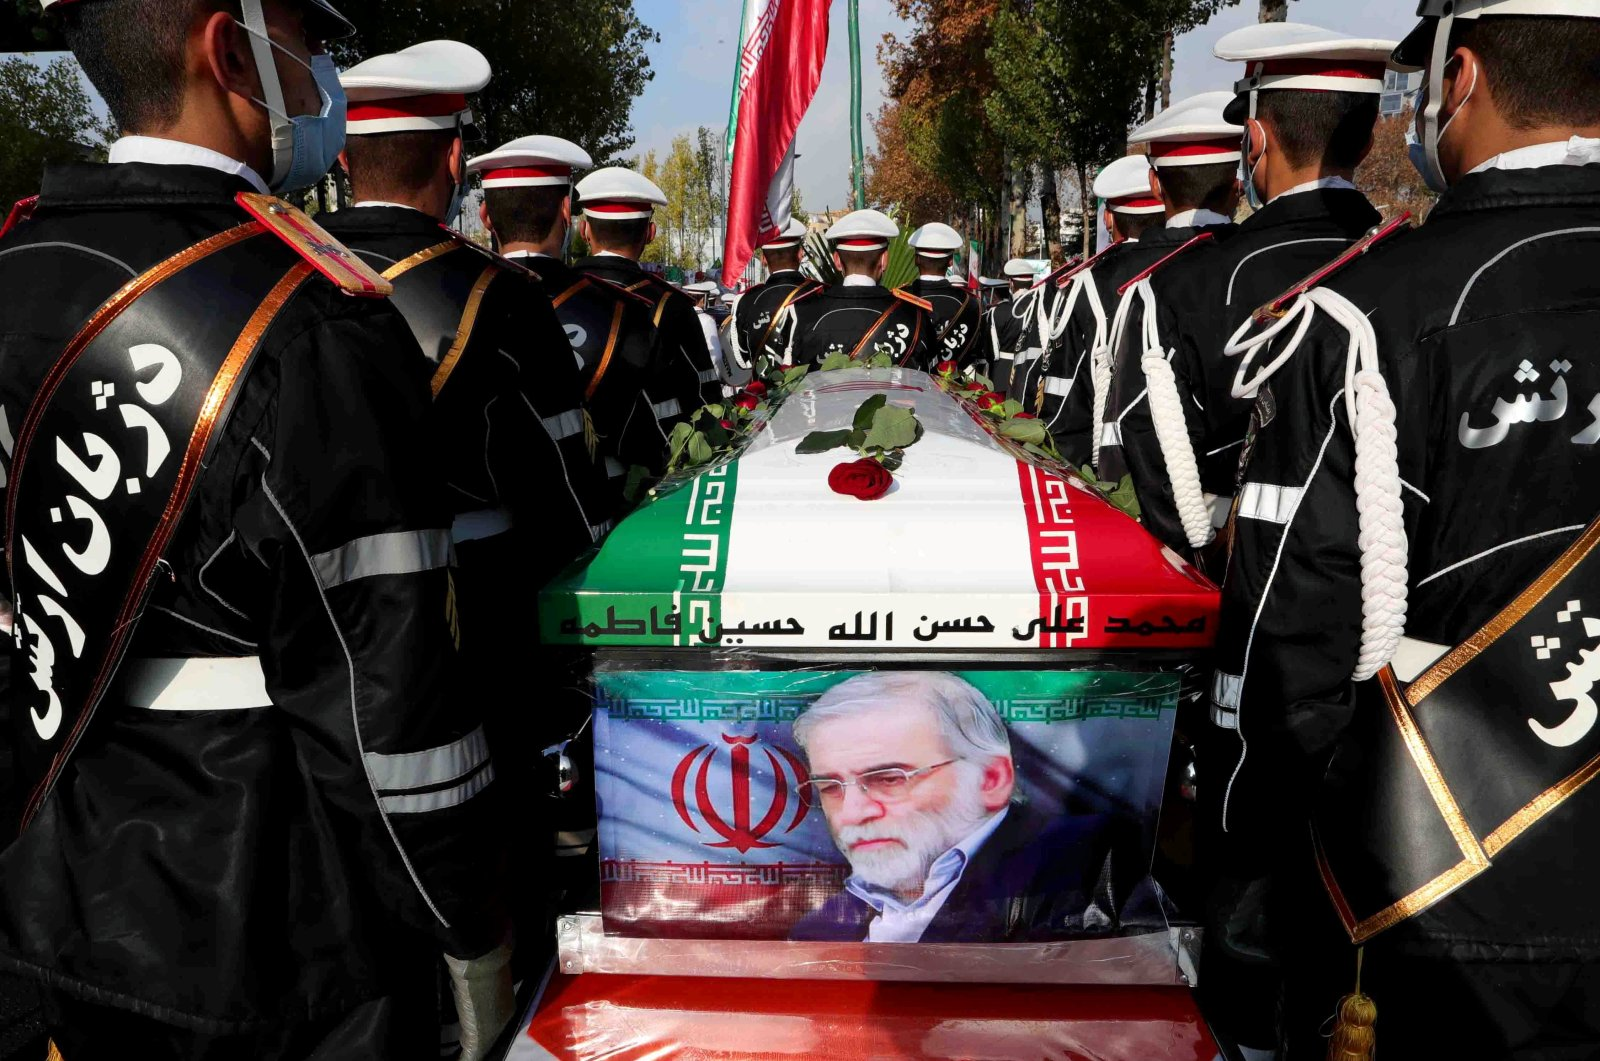 Members of Iranian forces carry the coffin of Iranian nuclear scientist Mohsen Fakhrizadeh during a funeral ceremony in Tehran, Iran on Nov. 30, 2020. (Reuters Photo)